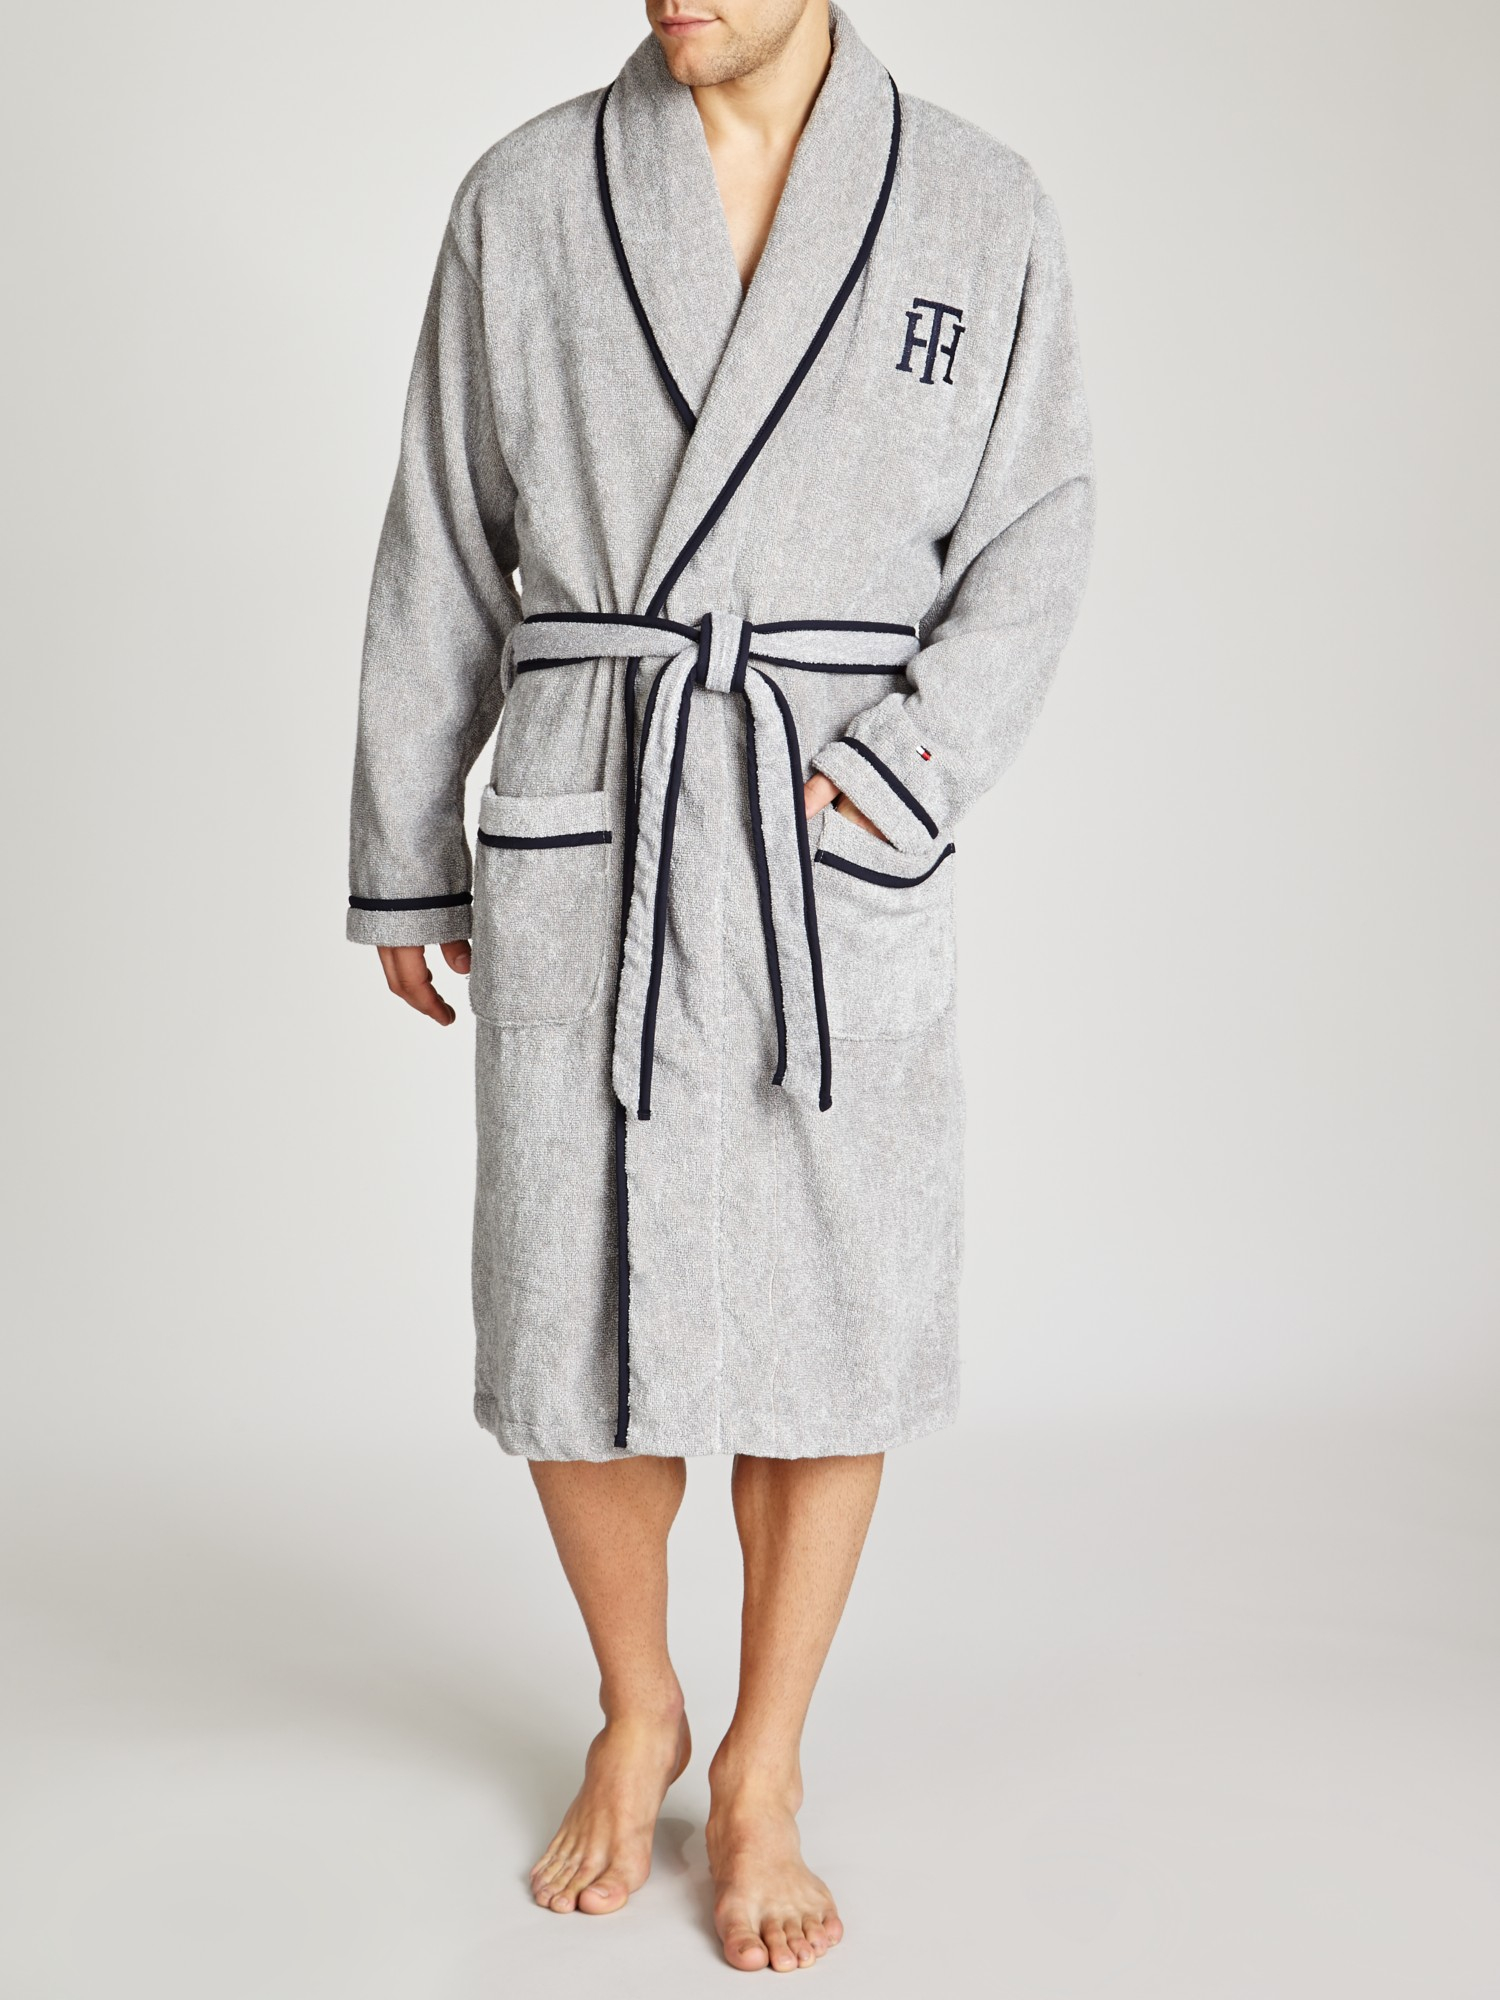 search for authentic limited style new york Tommy Hilfiger Gray Enzo Towel Robe for men